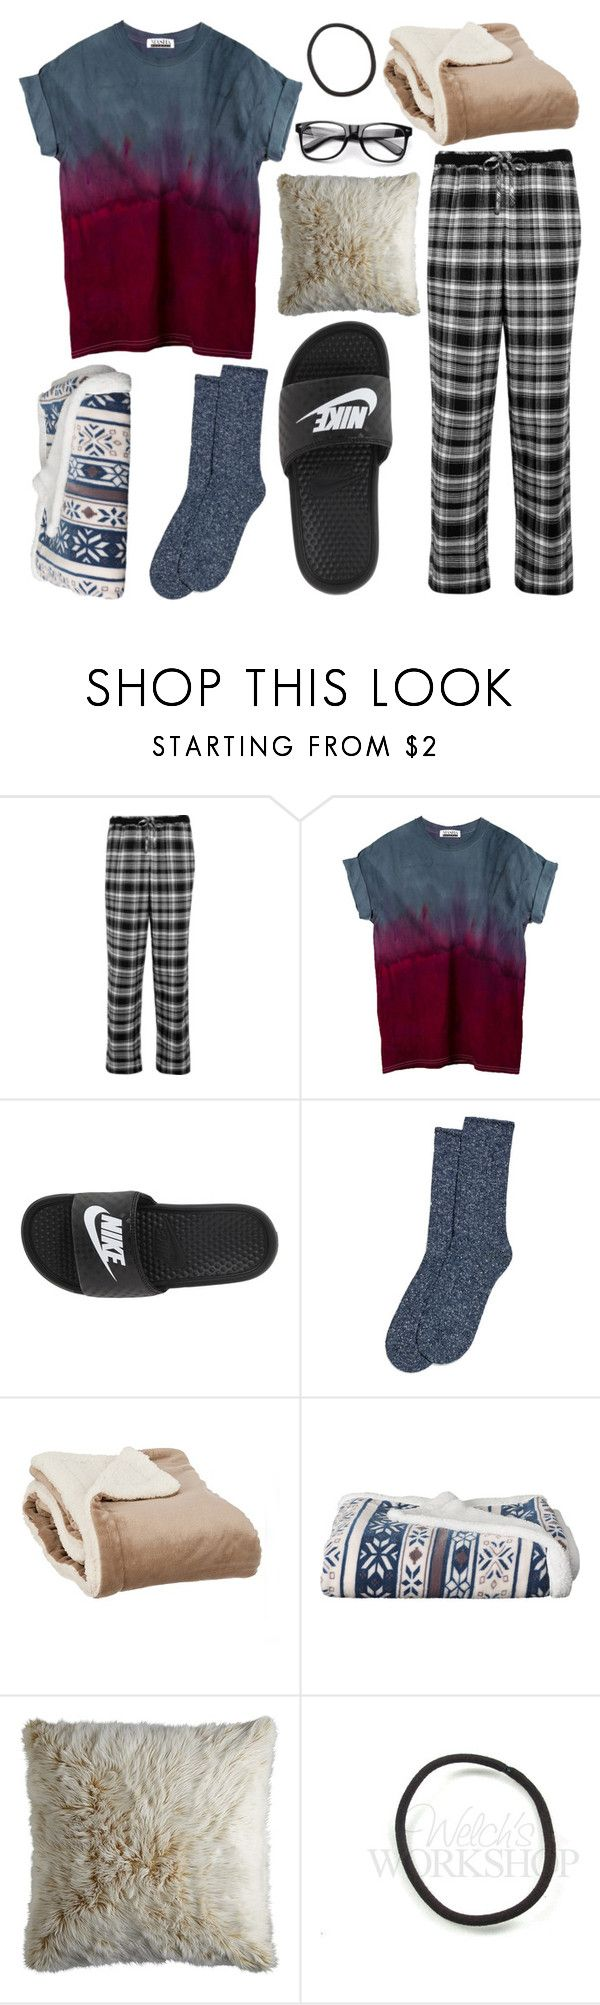 """Nighty Night"" by kiersten157 ❤ liked on Polyvore featuring DKNY, NIKE, Hue and Pier 1 Imports"